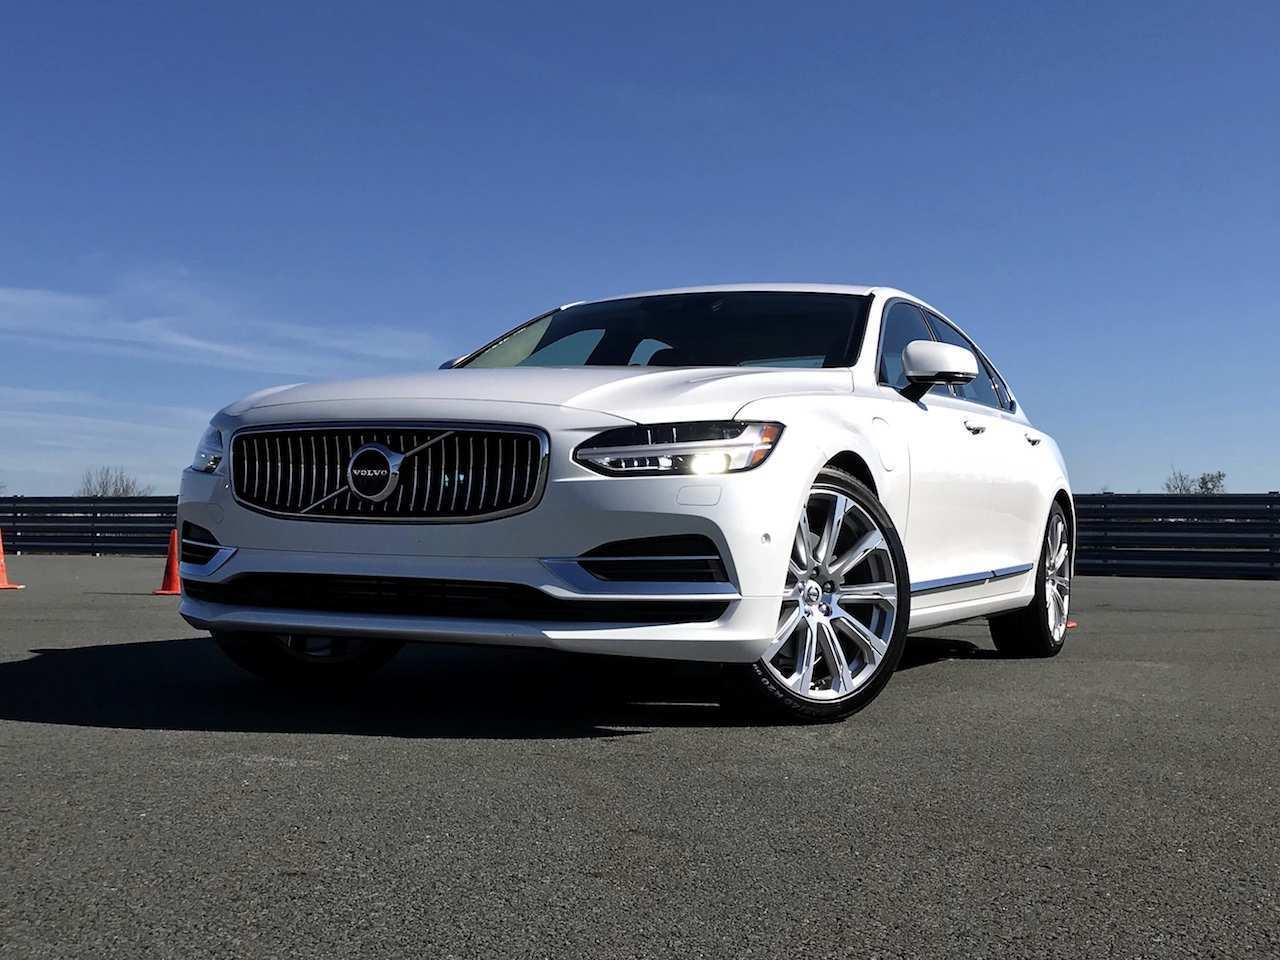 29 Gallery of S90 Volvo 2019 Performance by S90 Volvo 2019